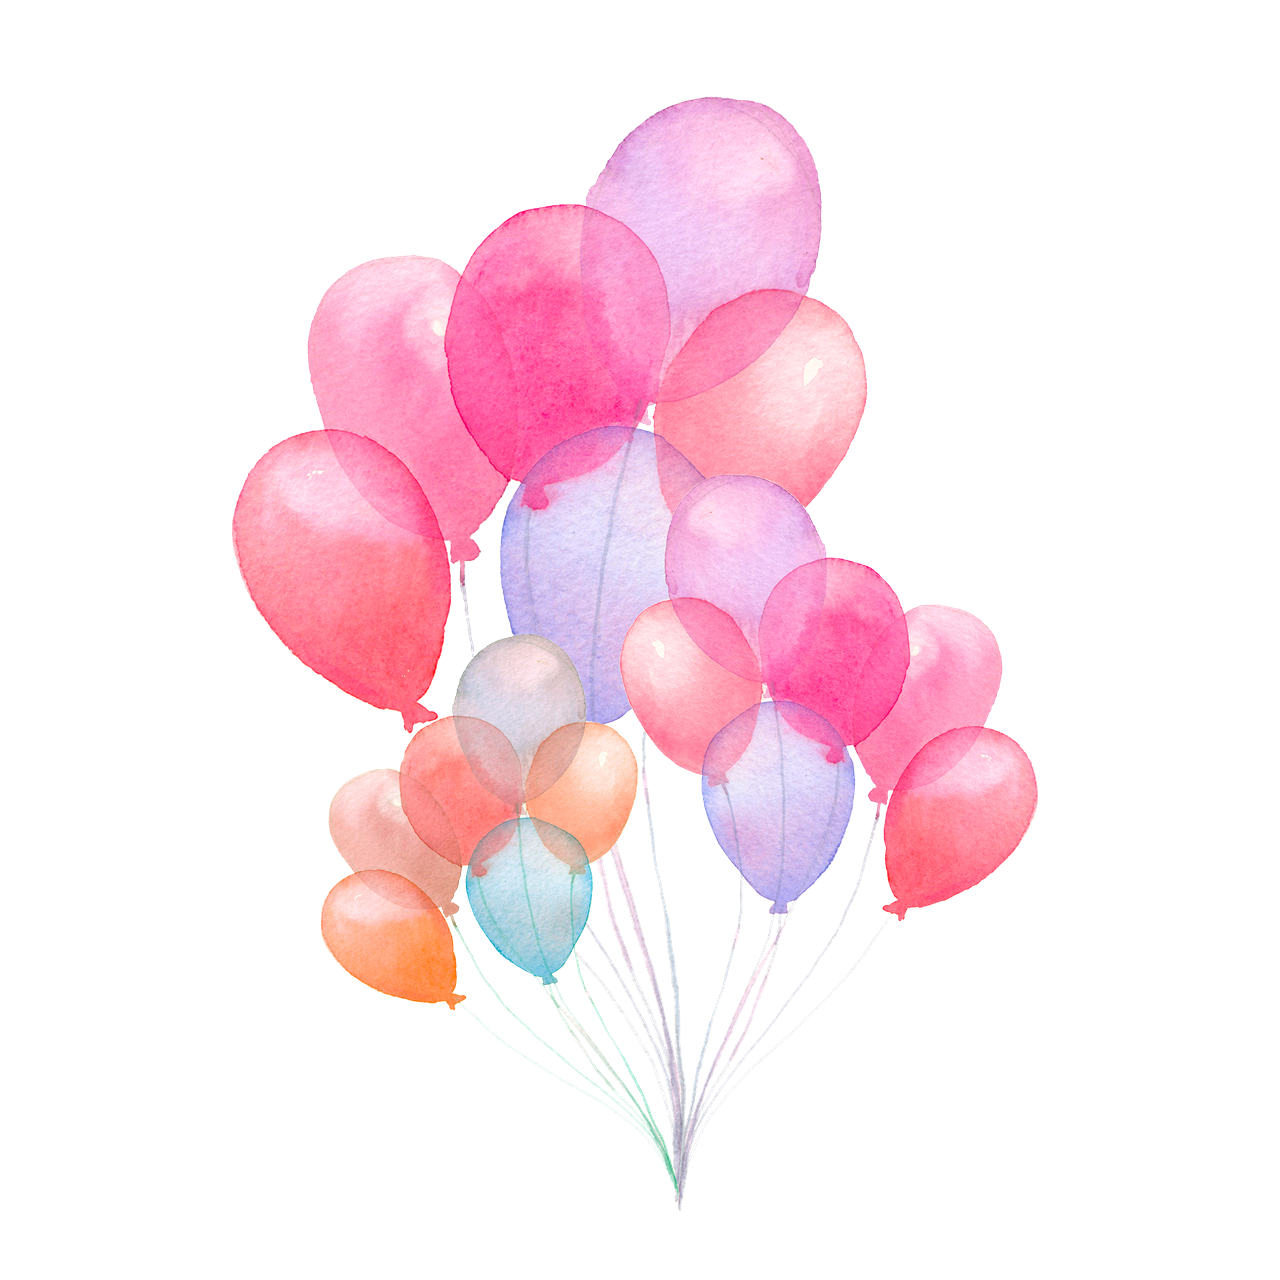 Colorful Balloons PNG Picture.